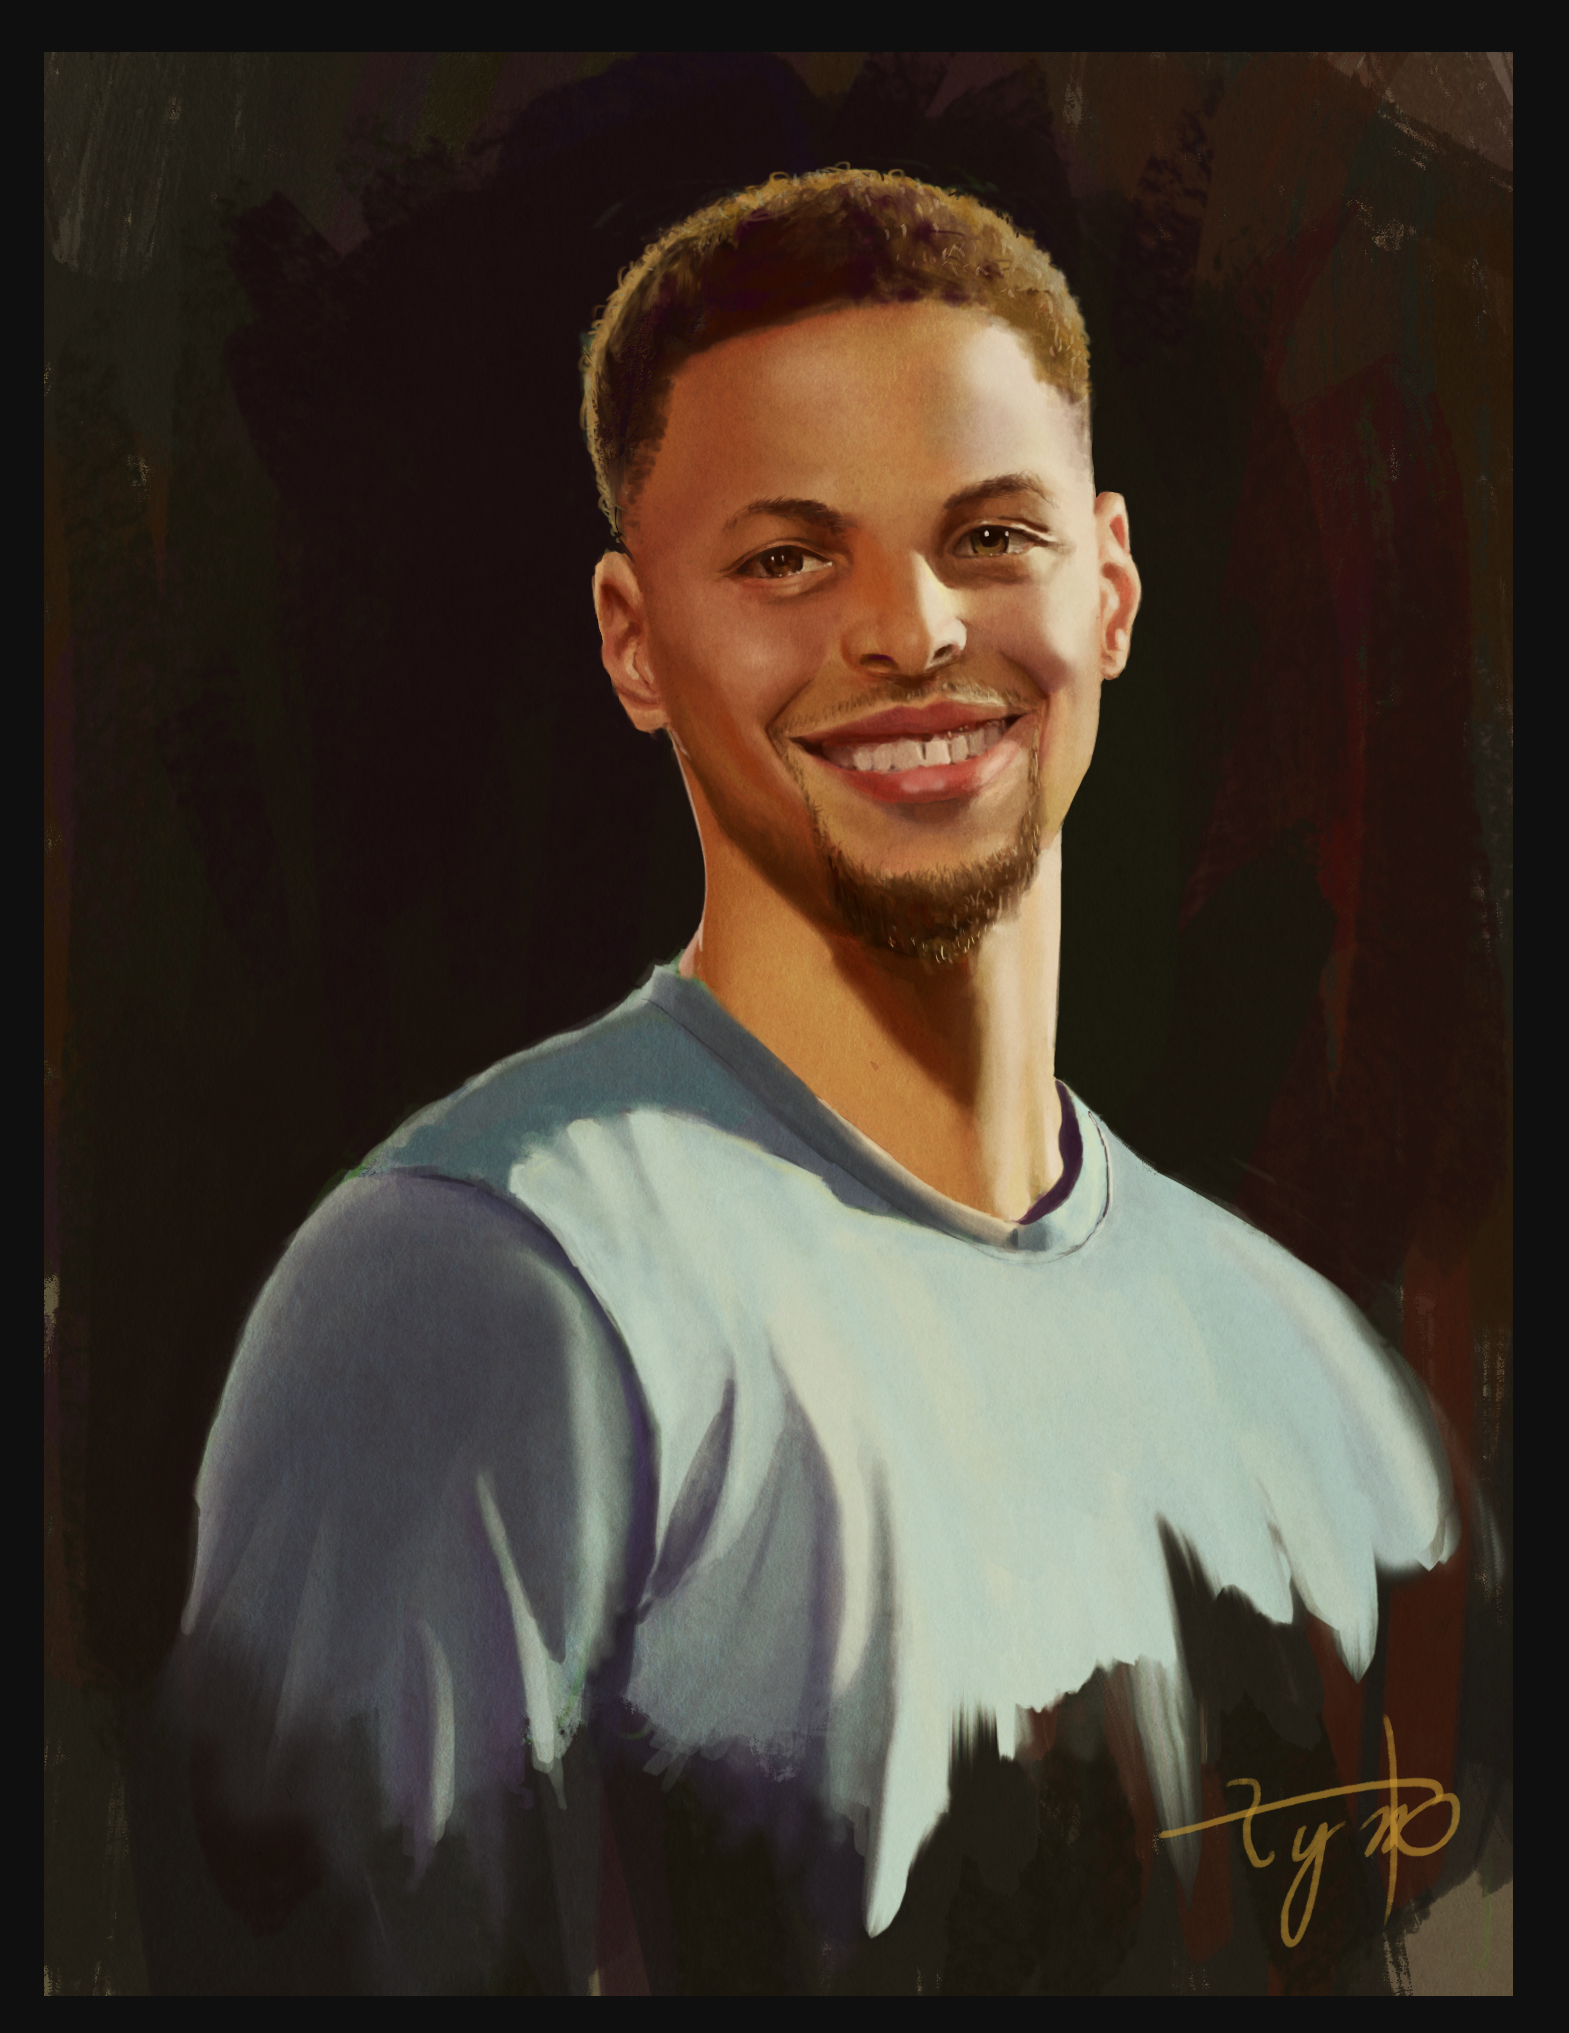 Digital Portrait: Stephen Curry - MVP from Golden State Warriors